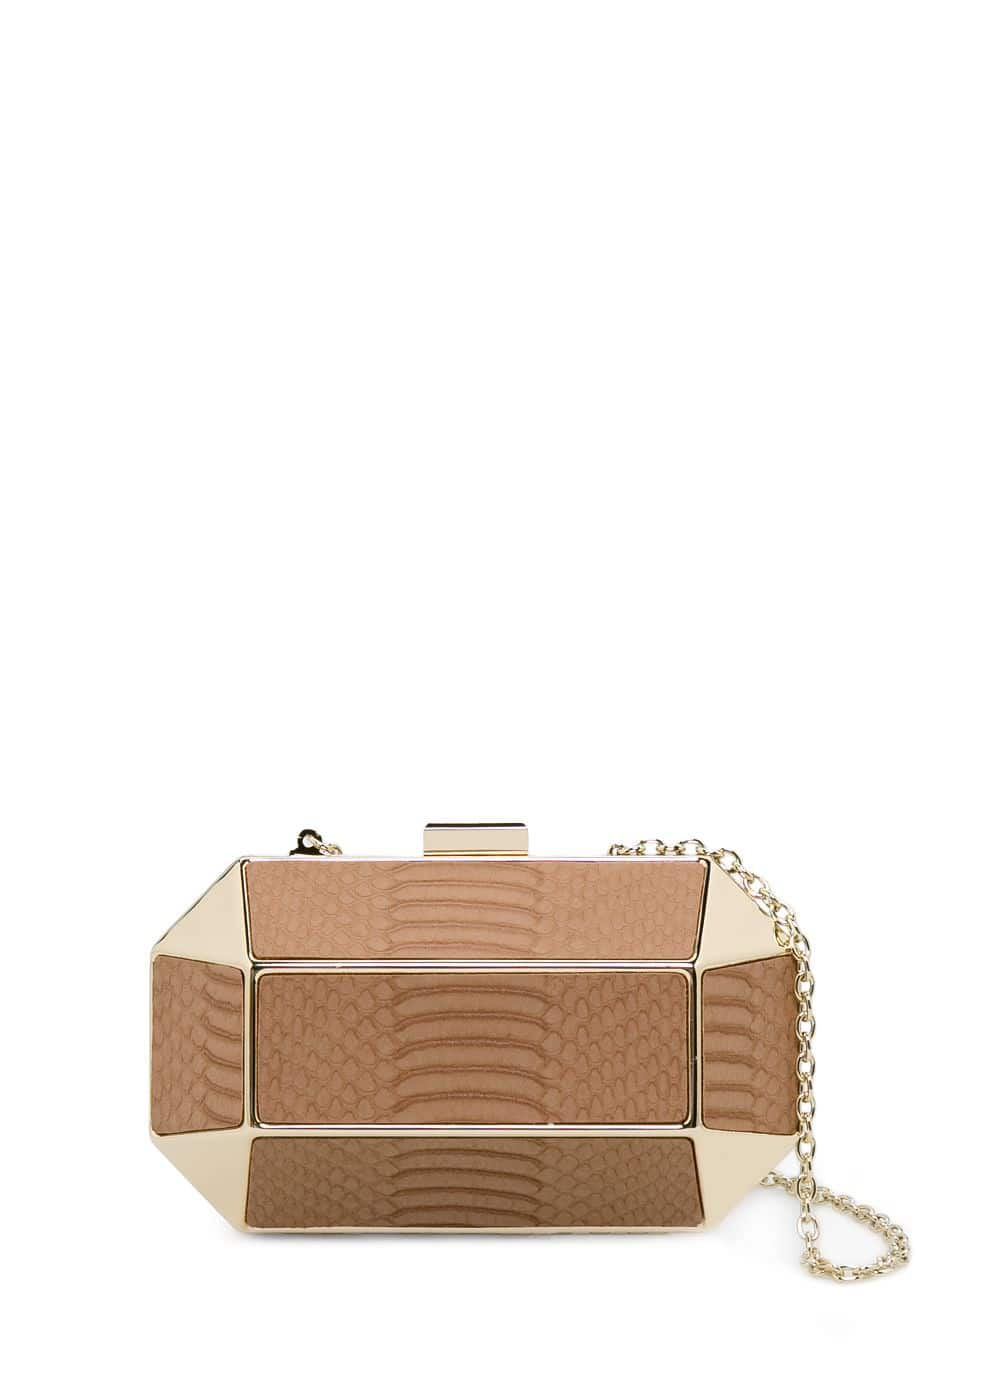 Crocodile-effect geometric box clutch